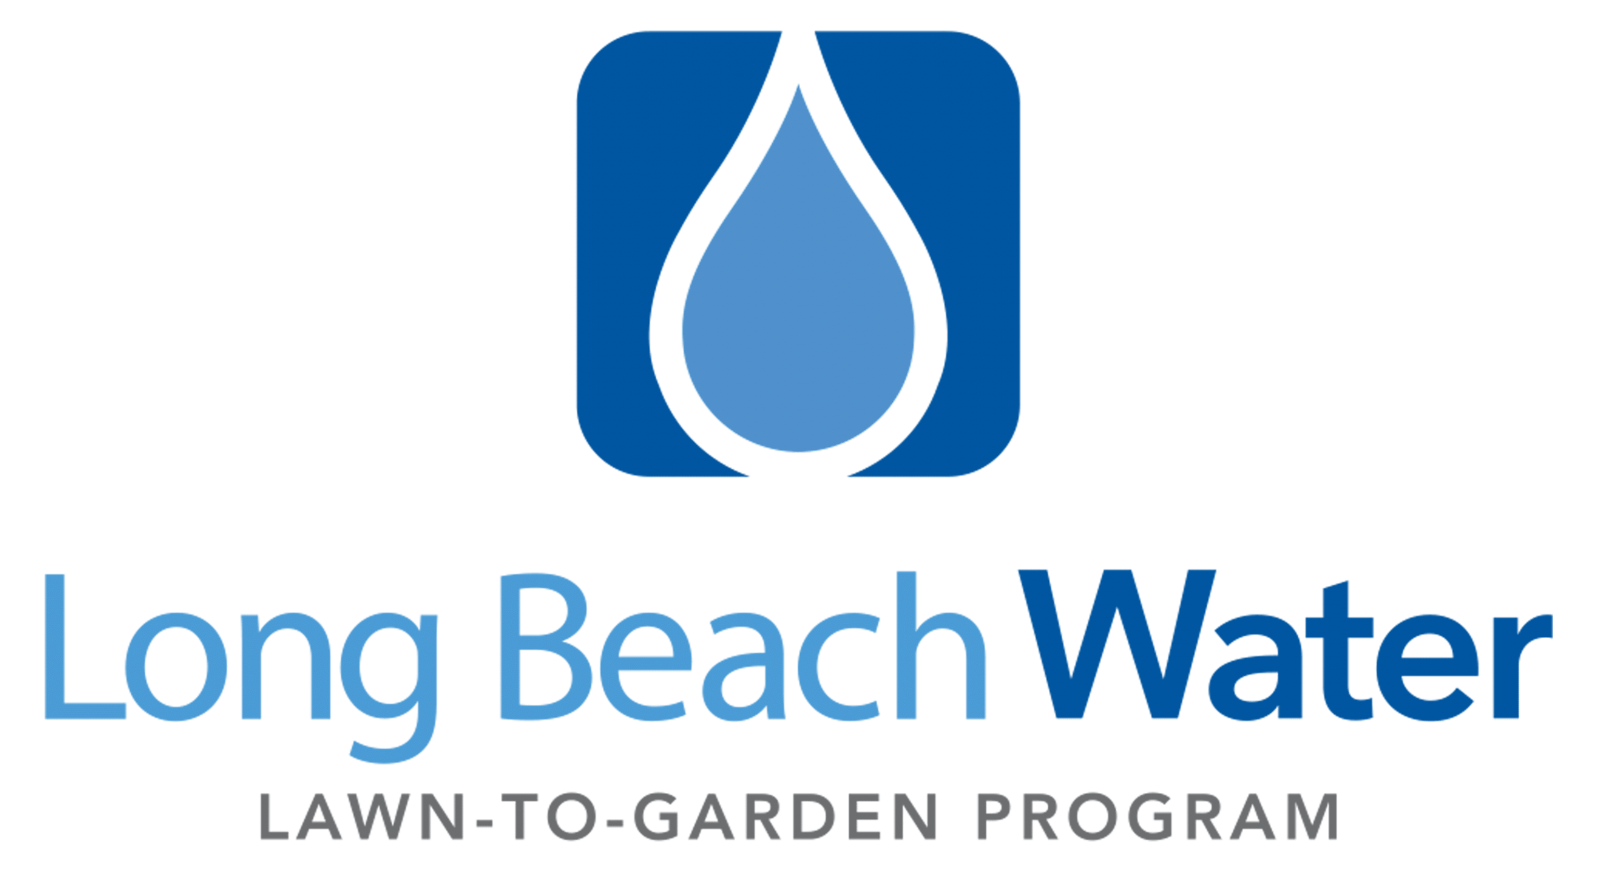 Beautiful Long Beach Lawn to Garden Retina Logo